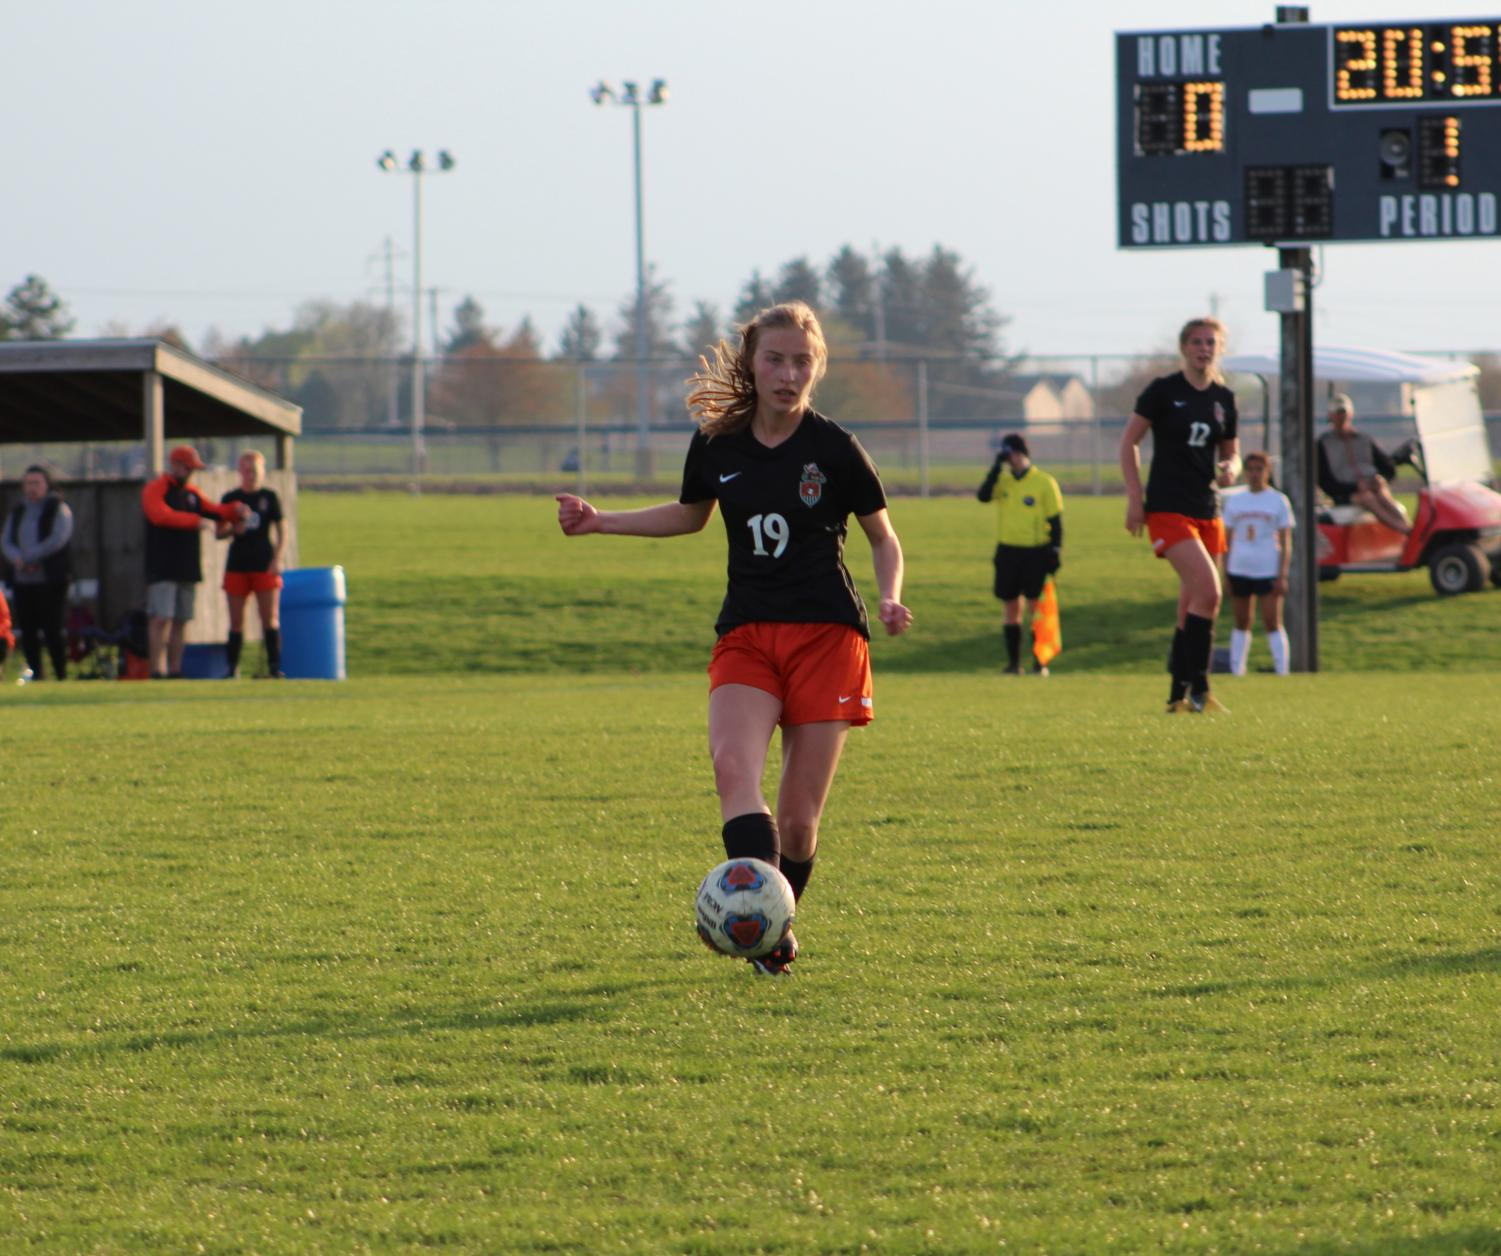 Midfielder+Samantha+Churchey+passes++the+ball+to+a+teammate.+Churchey+plans+on+attending+Illinois+Wesleyan+University.